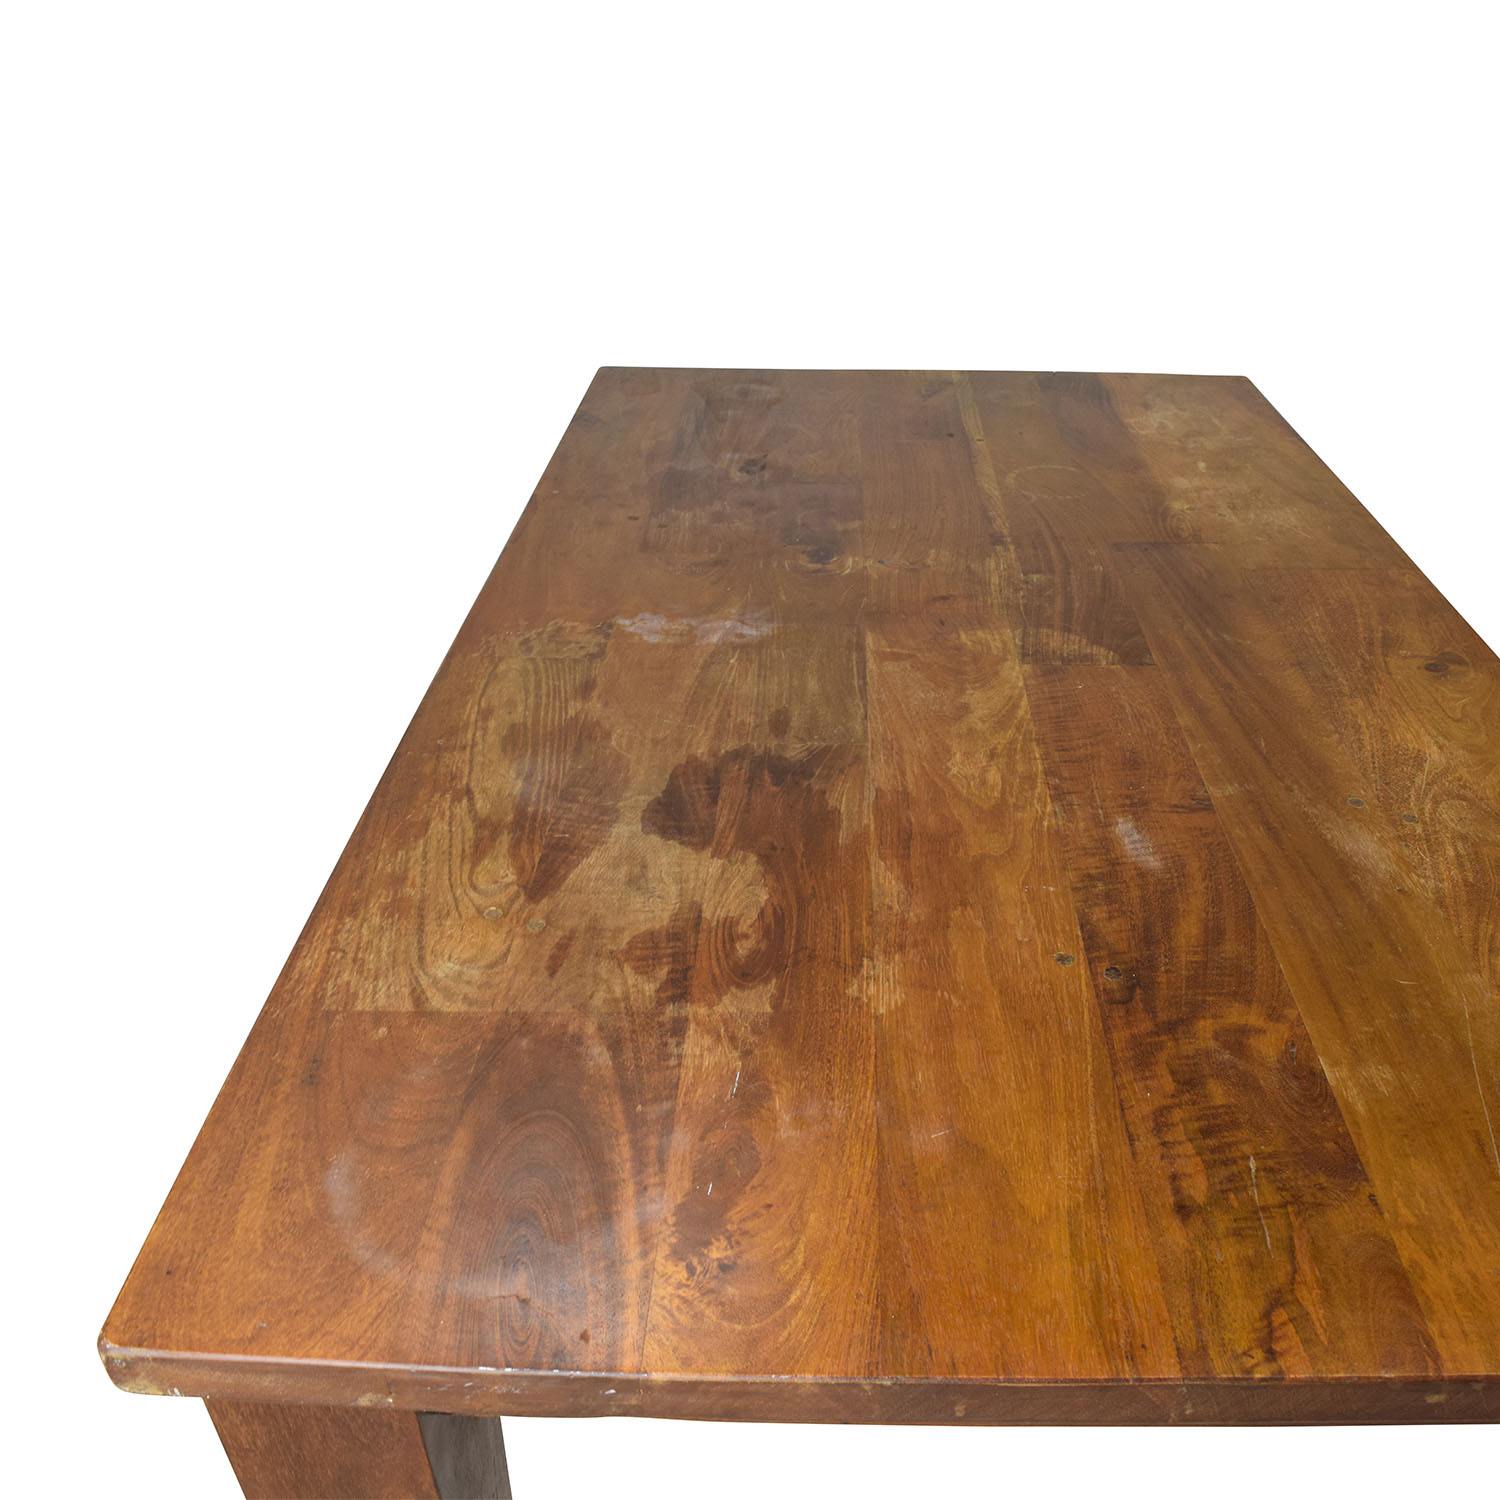 71 off west elm west elm indian rosewood dining table tables buy west elm west elm indian rosewood dining table online geotapseo Choice Image